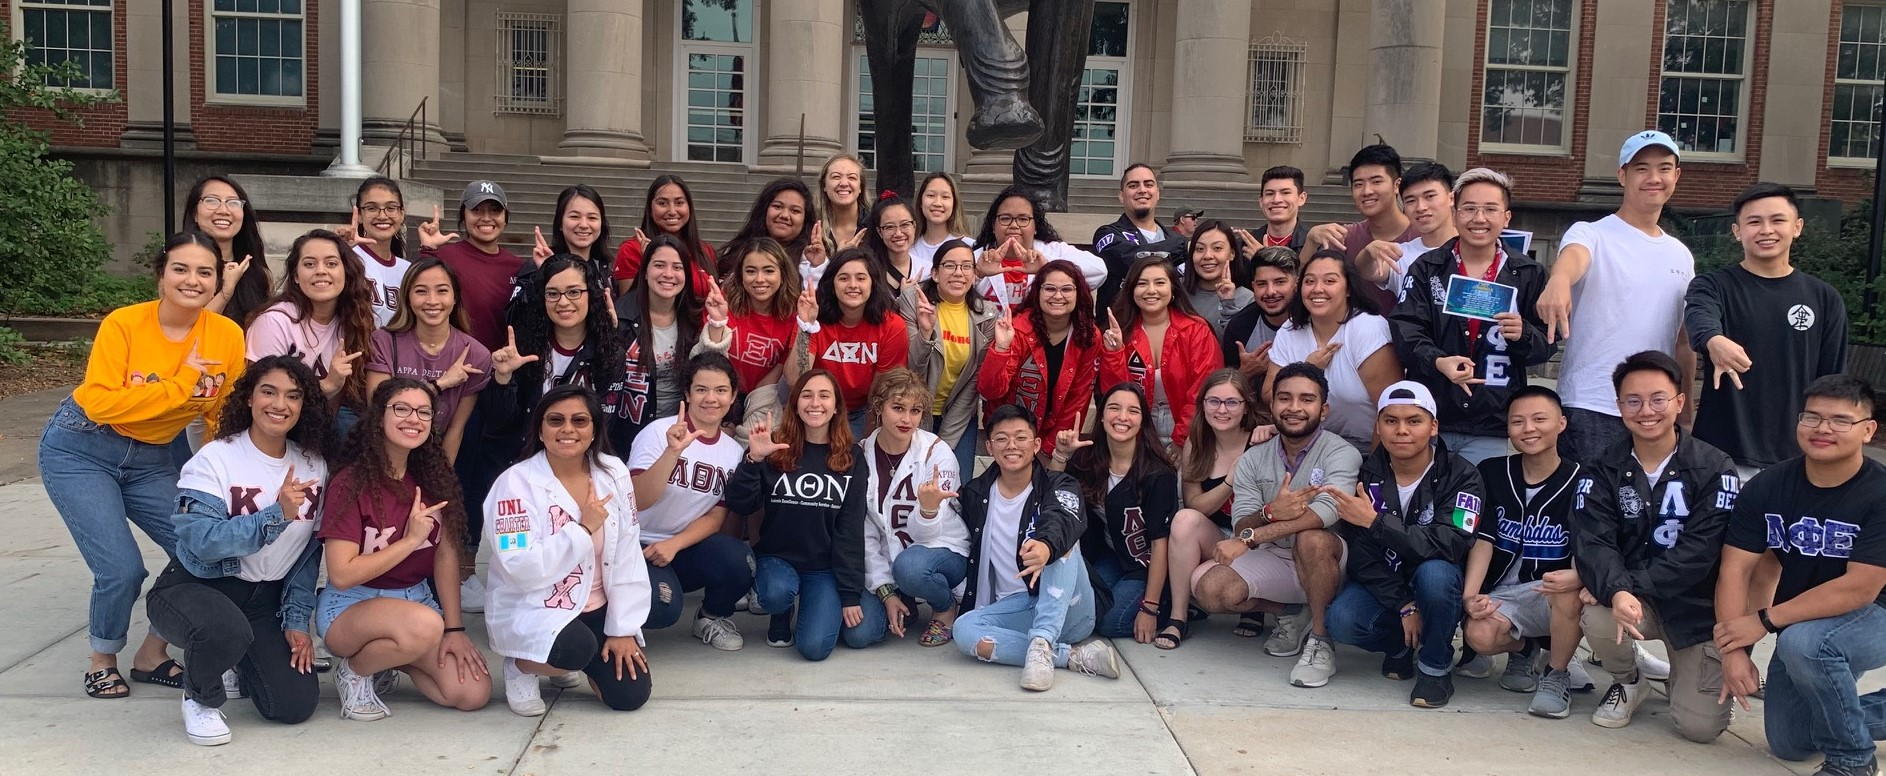 A Group Shot of the Multicultural Greek Council